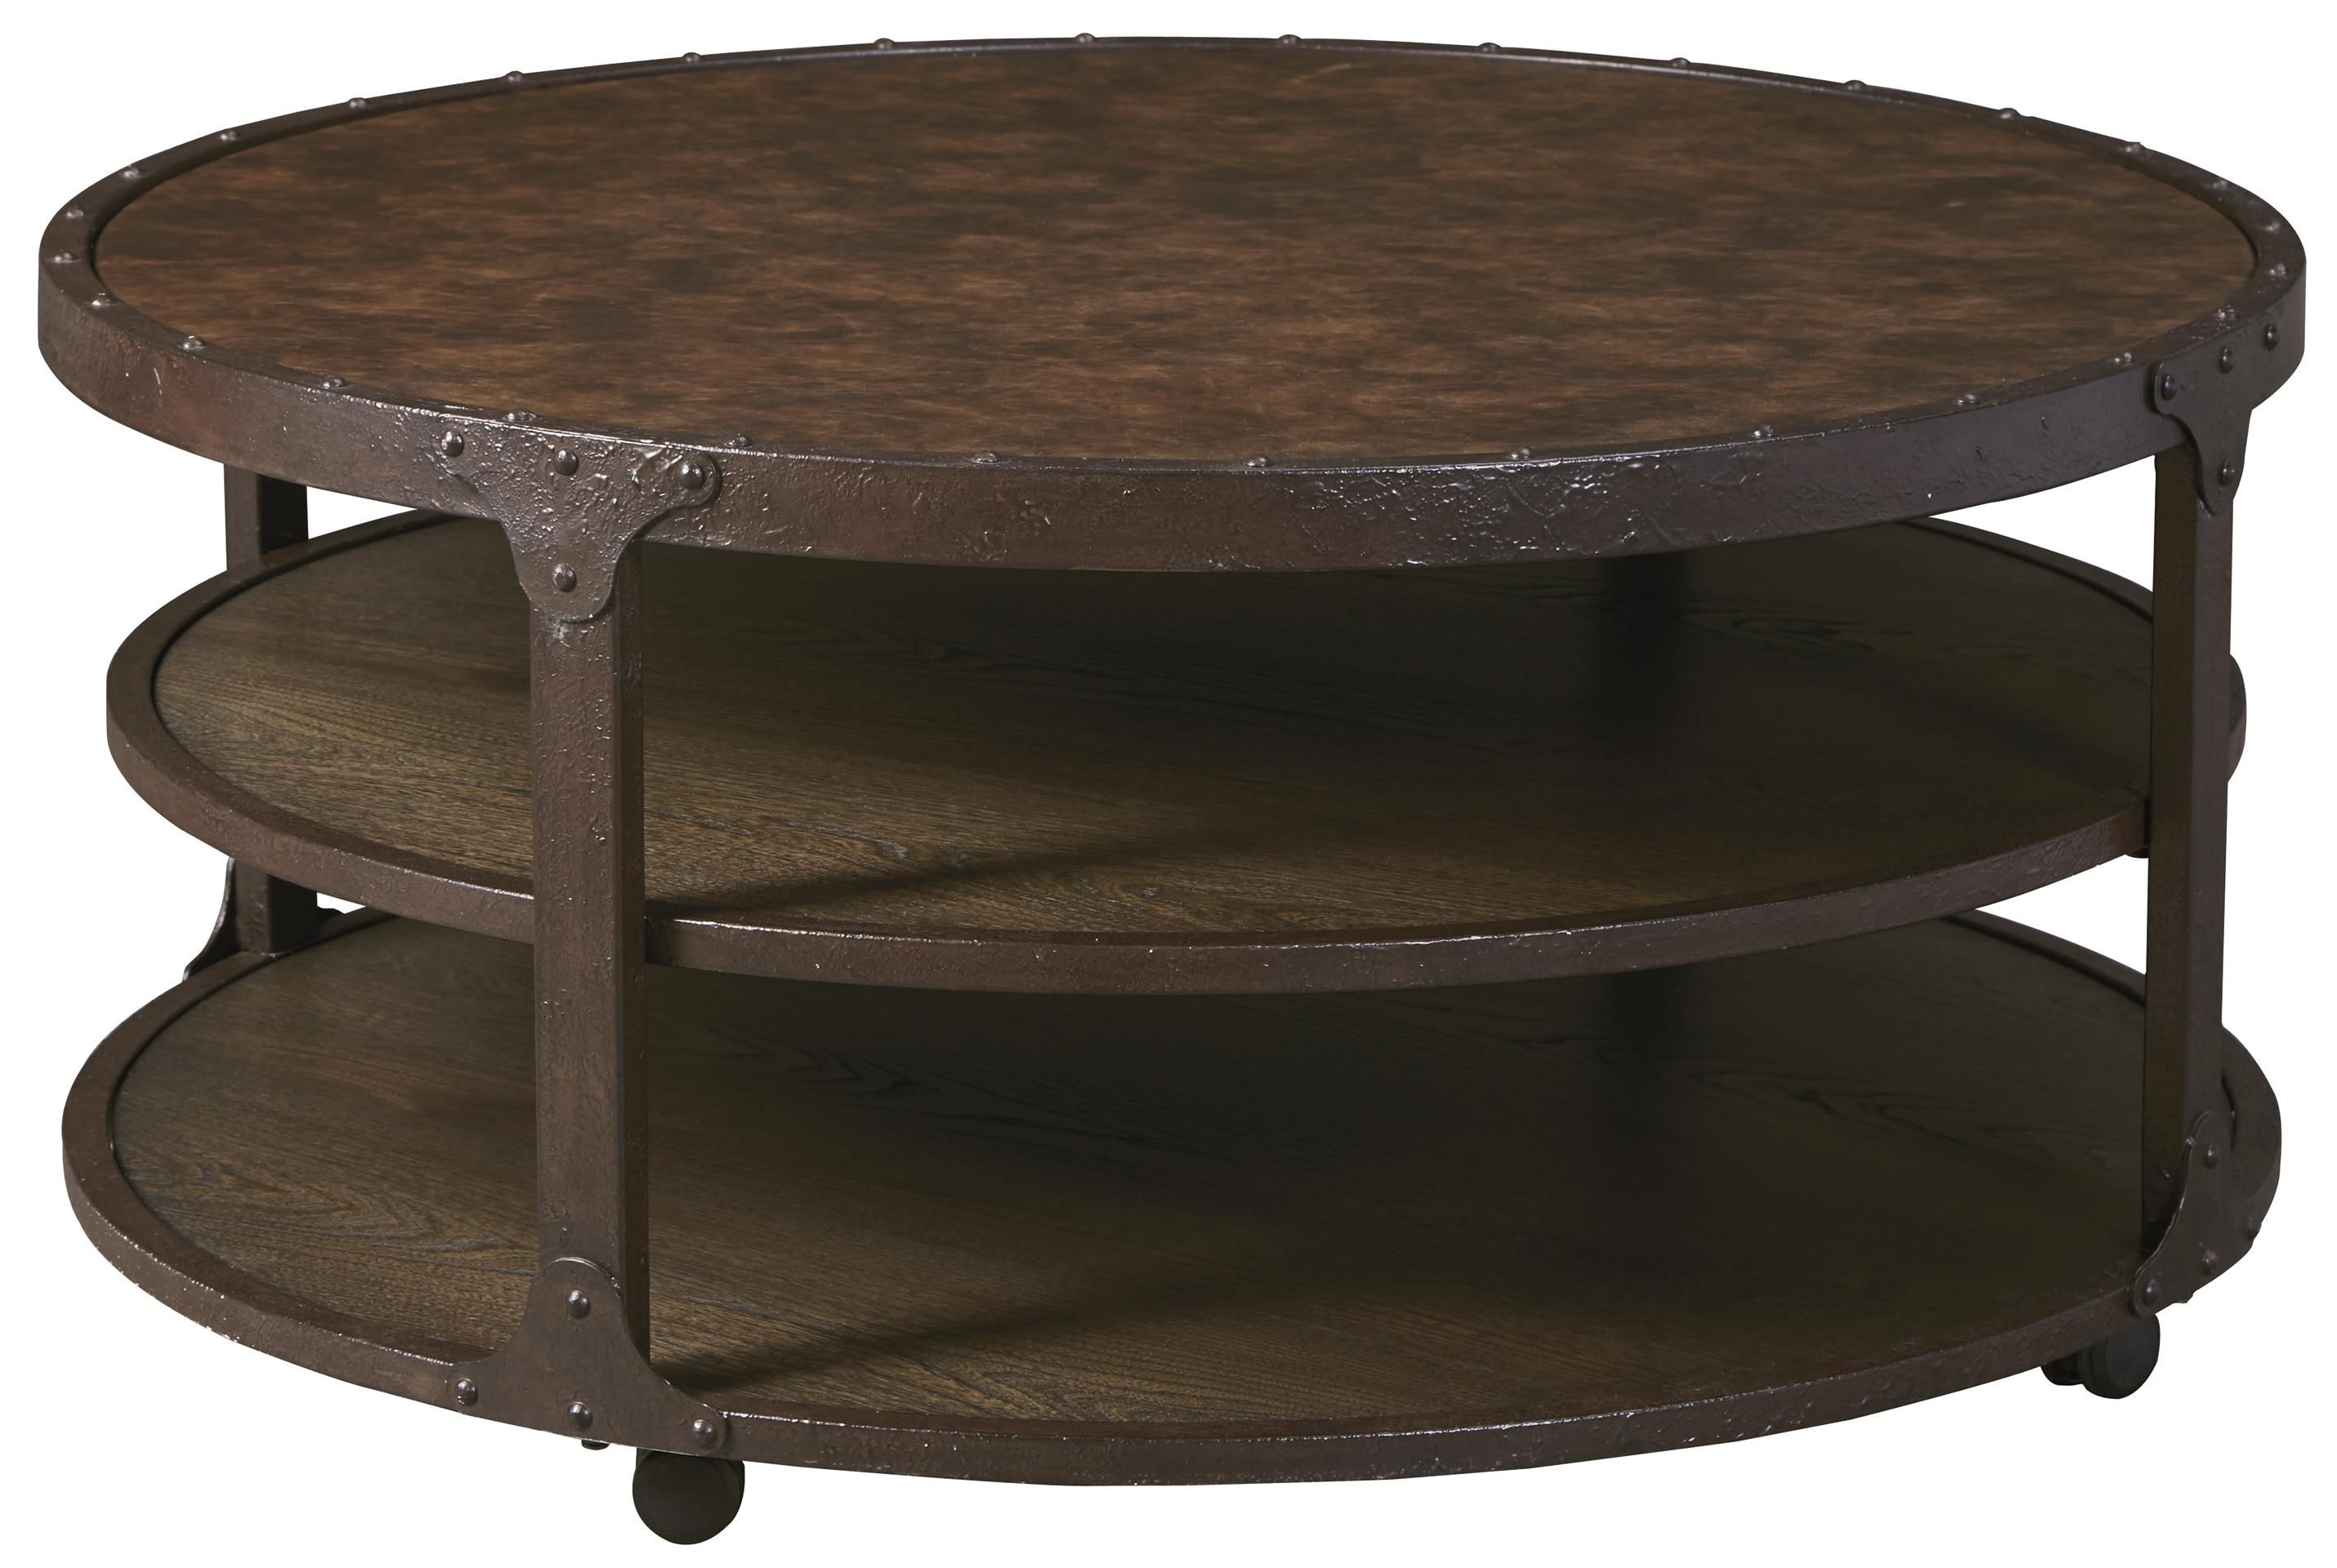 Shofern Round Cocktail Table By Signature Design By Ashley Round Coffee Table Coffee Table Industrial Coffee Table [ 1919 x 2860 Pixel ]